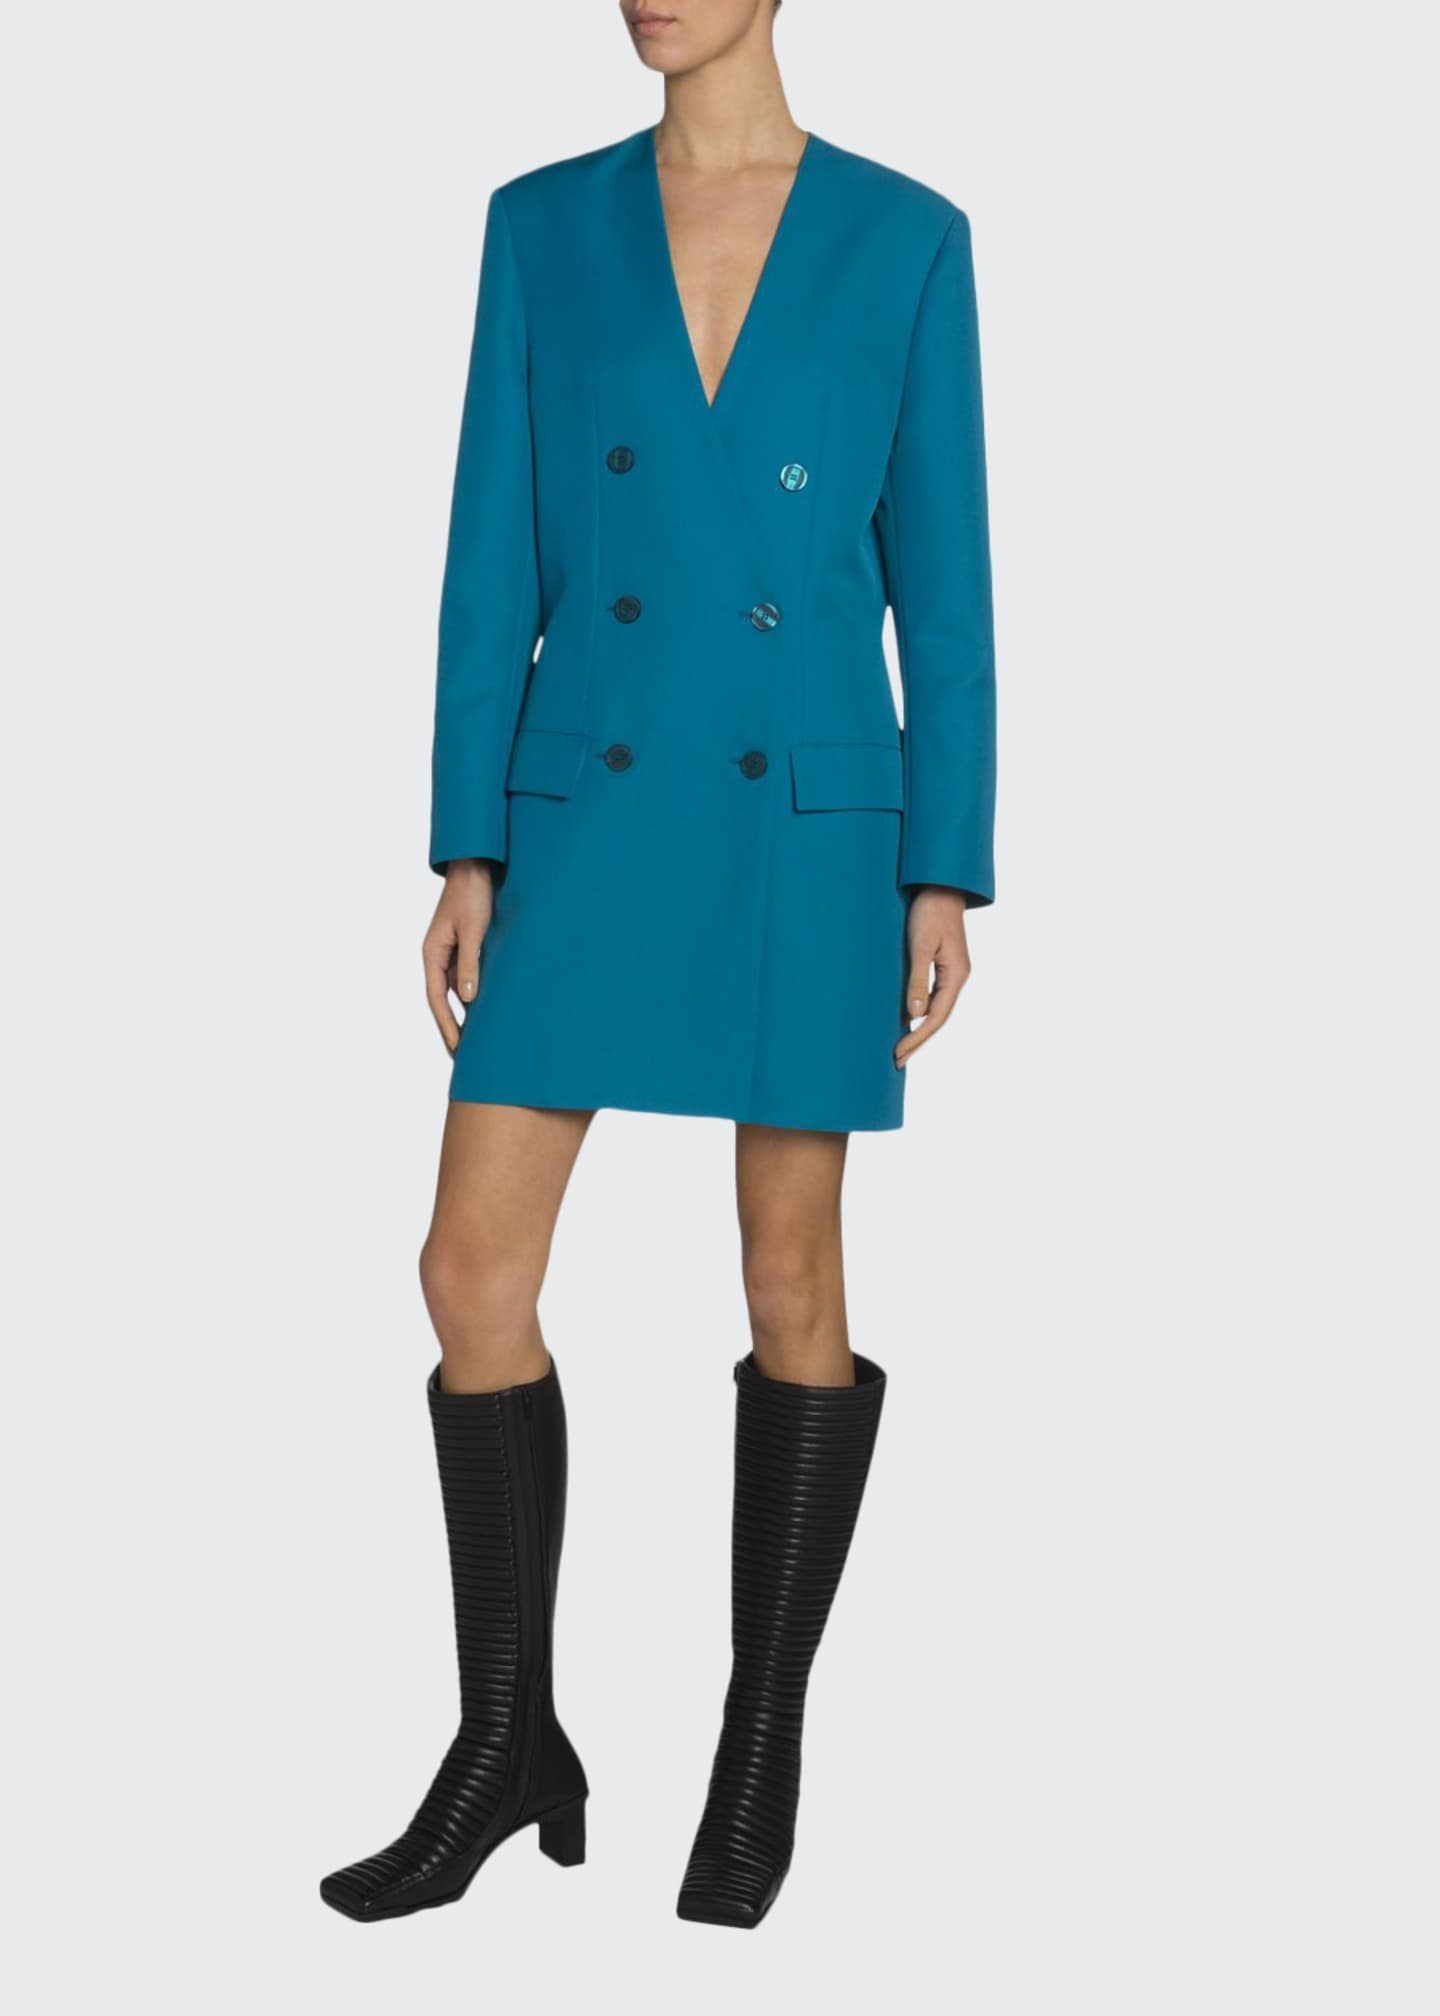 Balenciaga Tech Twill Double-Breasted Blazer Dress